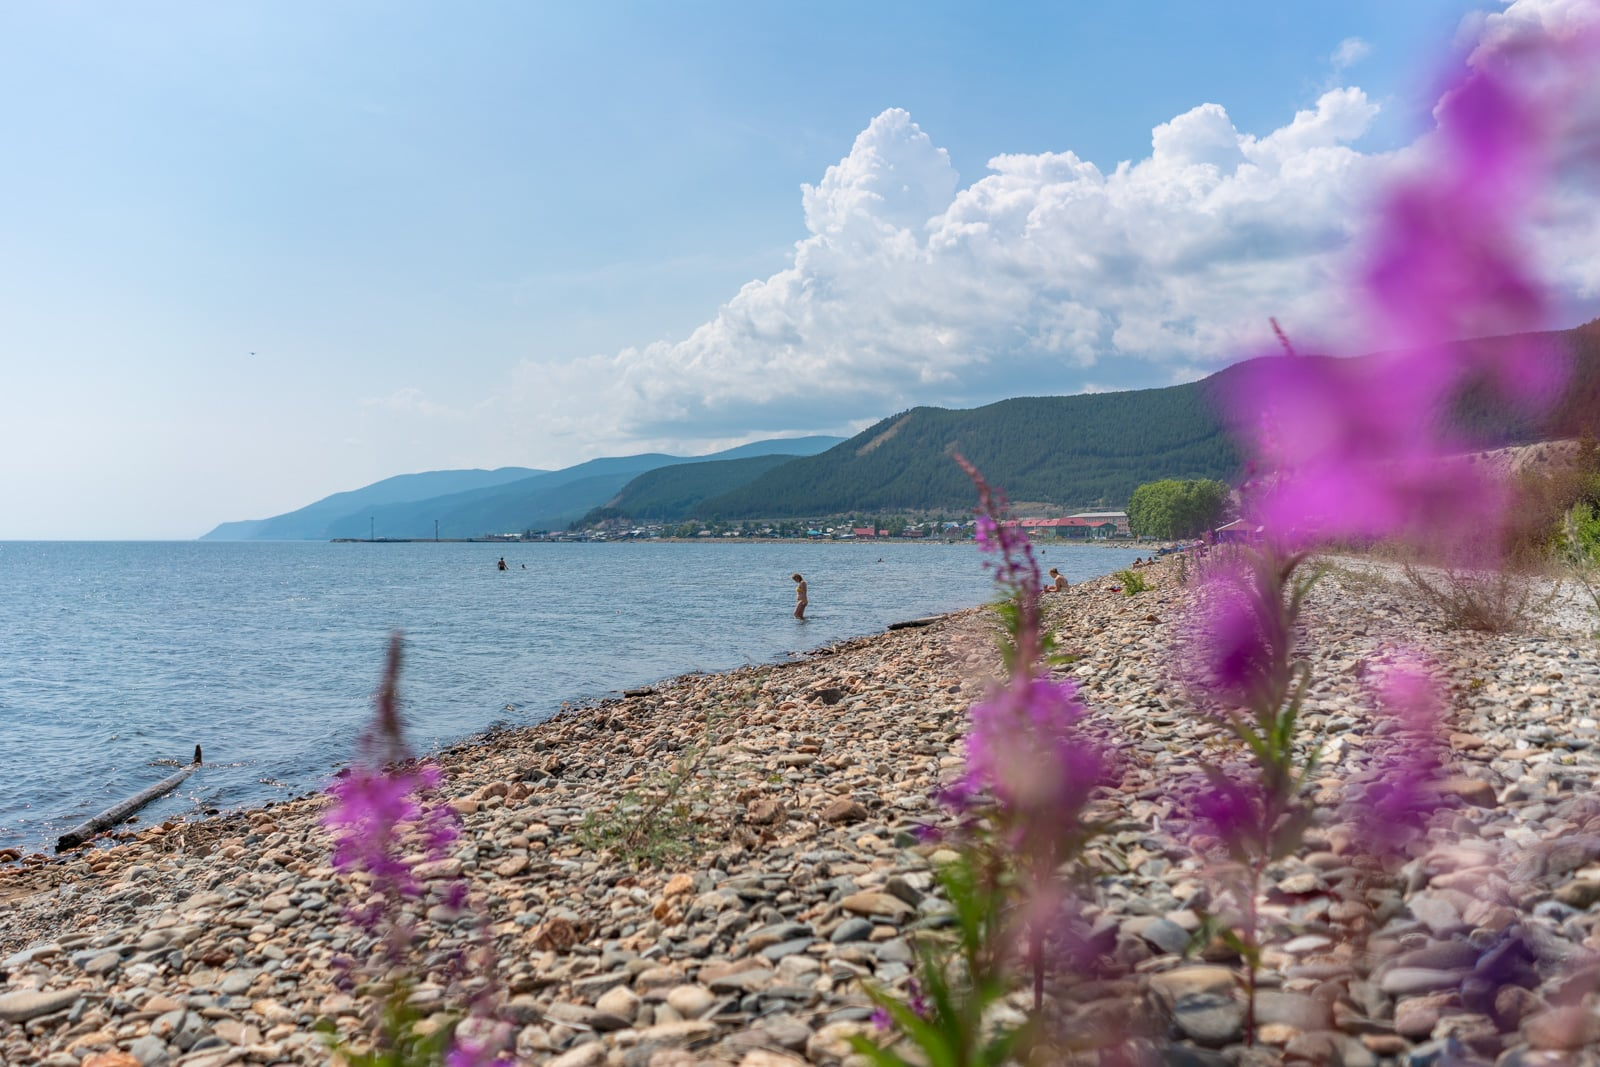 Flowers on the shore of northern Lake Baikal near Severobaikalsk, Siberia, Russia